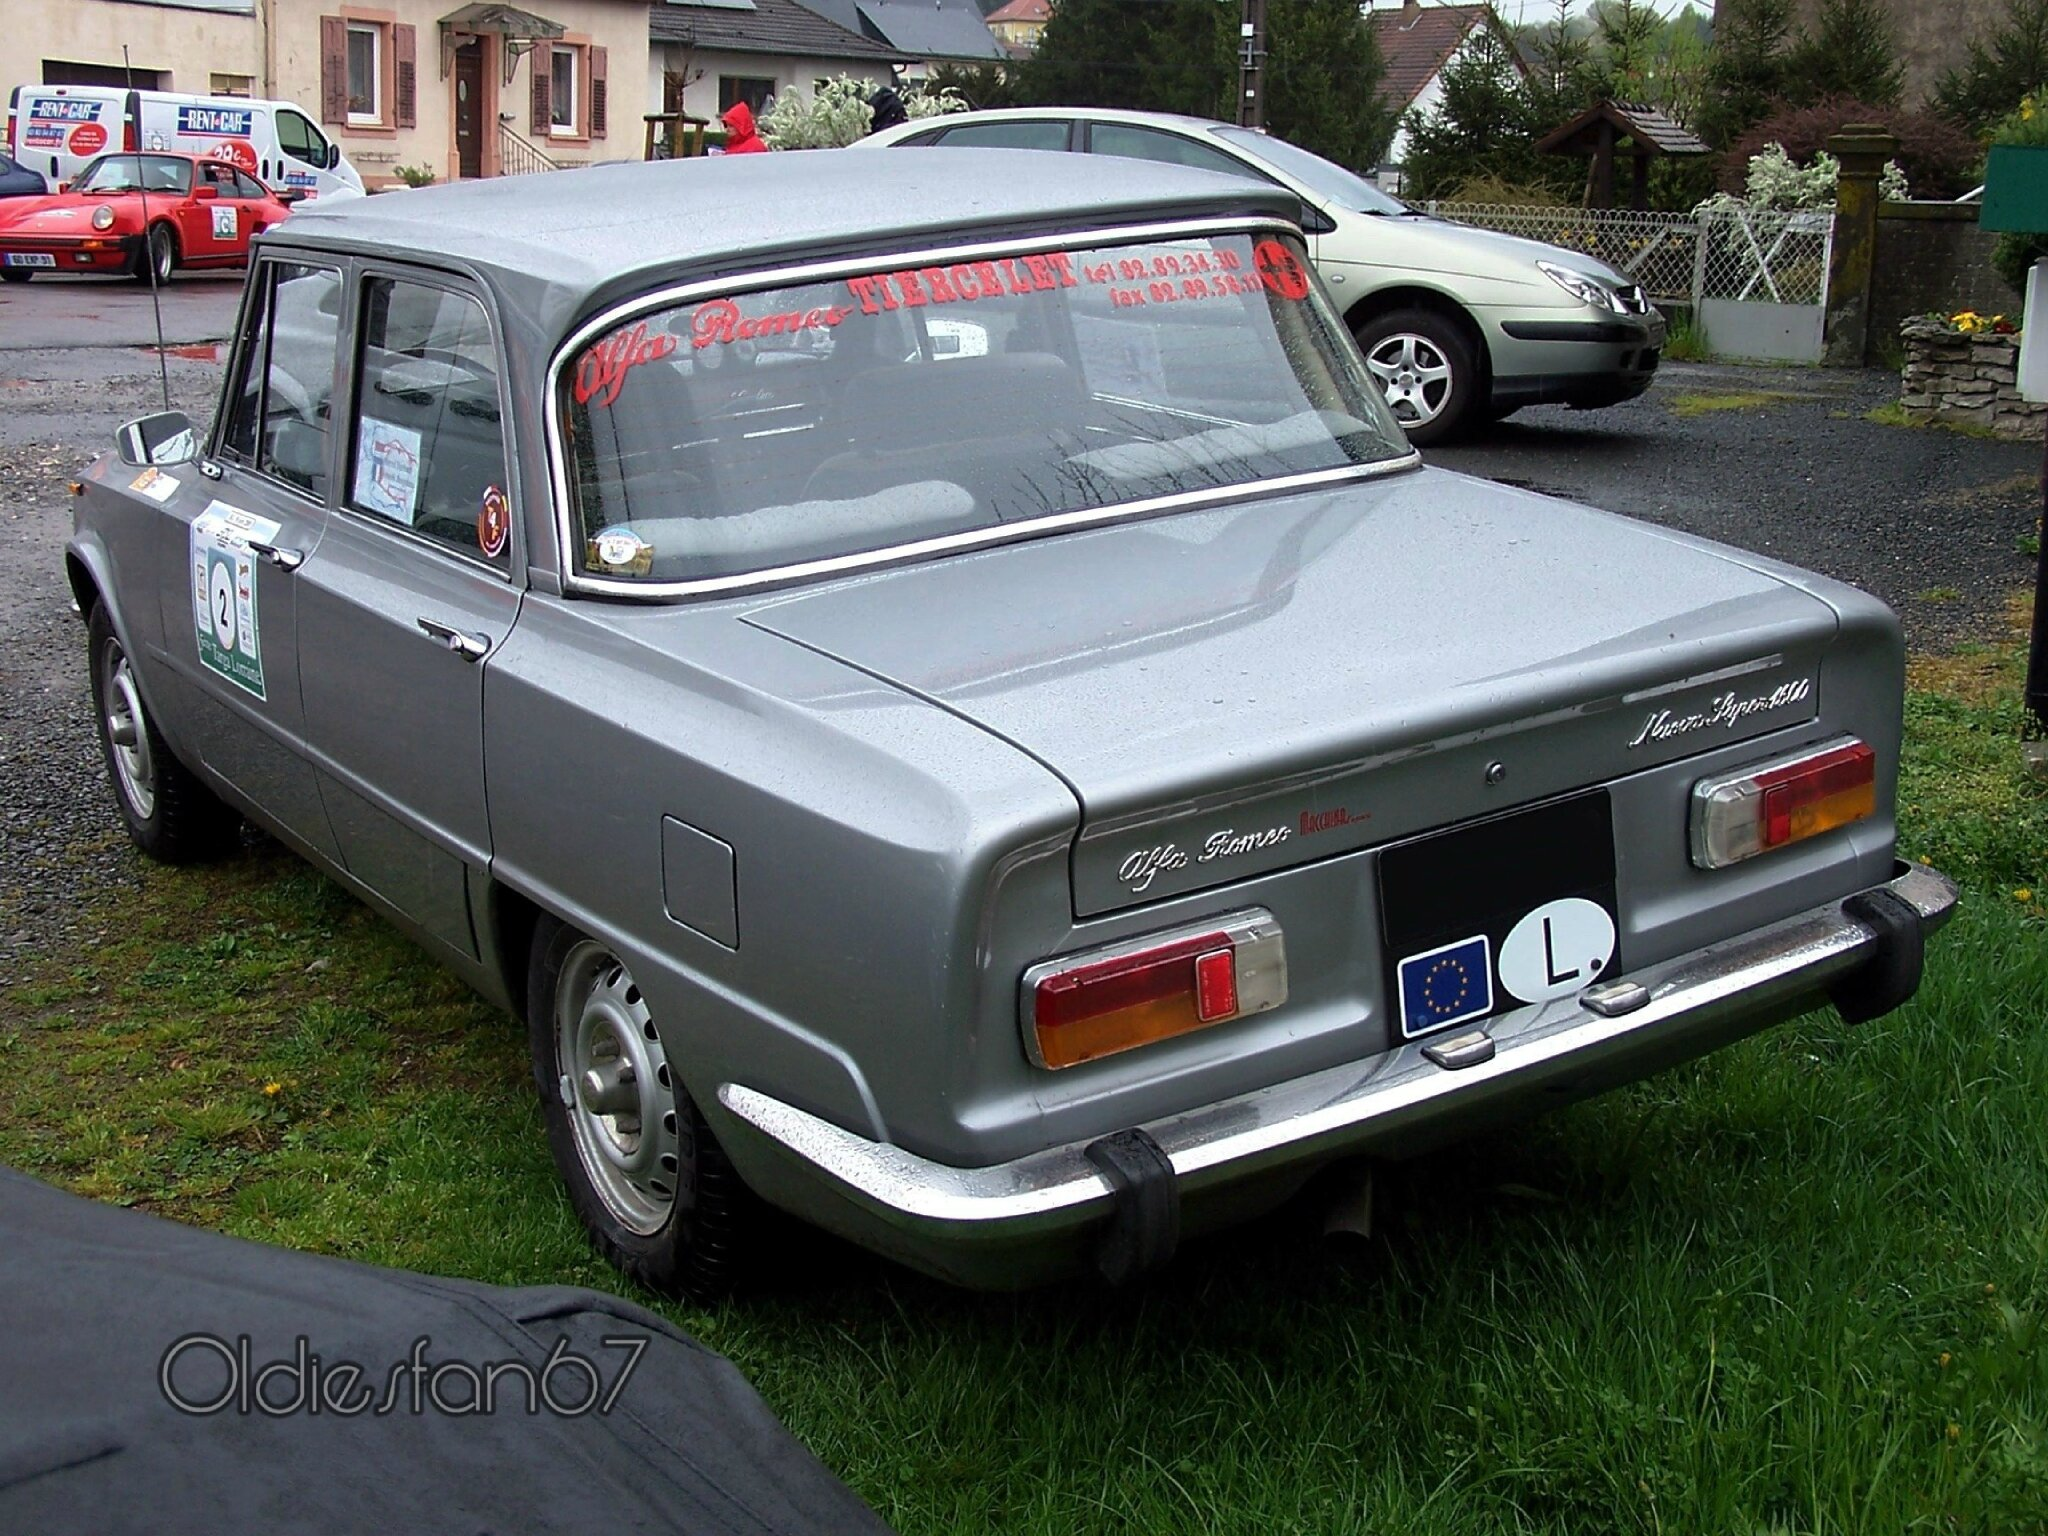 alfa romeo giulia nuova 1600 super oldiesfan67 mon blog. Black Bedroom Furniture Sets. Home Design Ideas